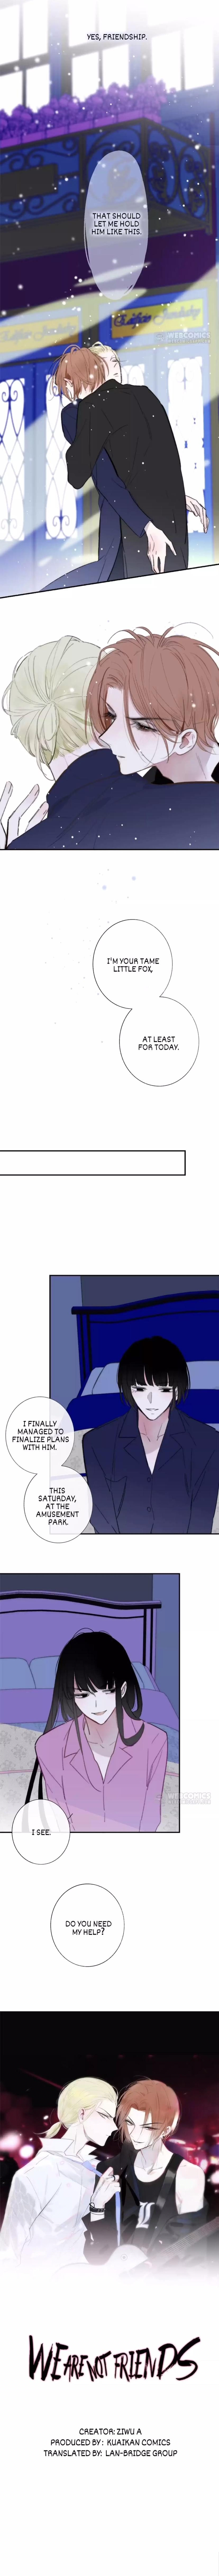 We Are Not Friends - chapter 44 - #1